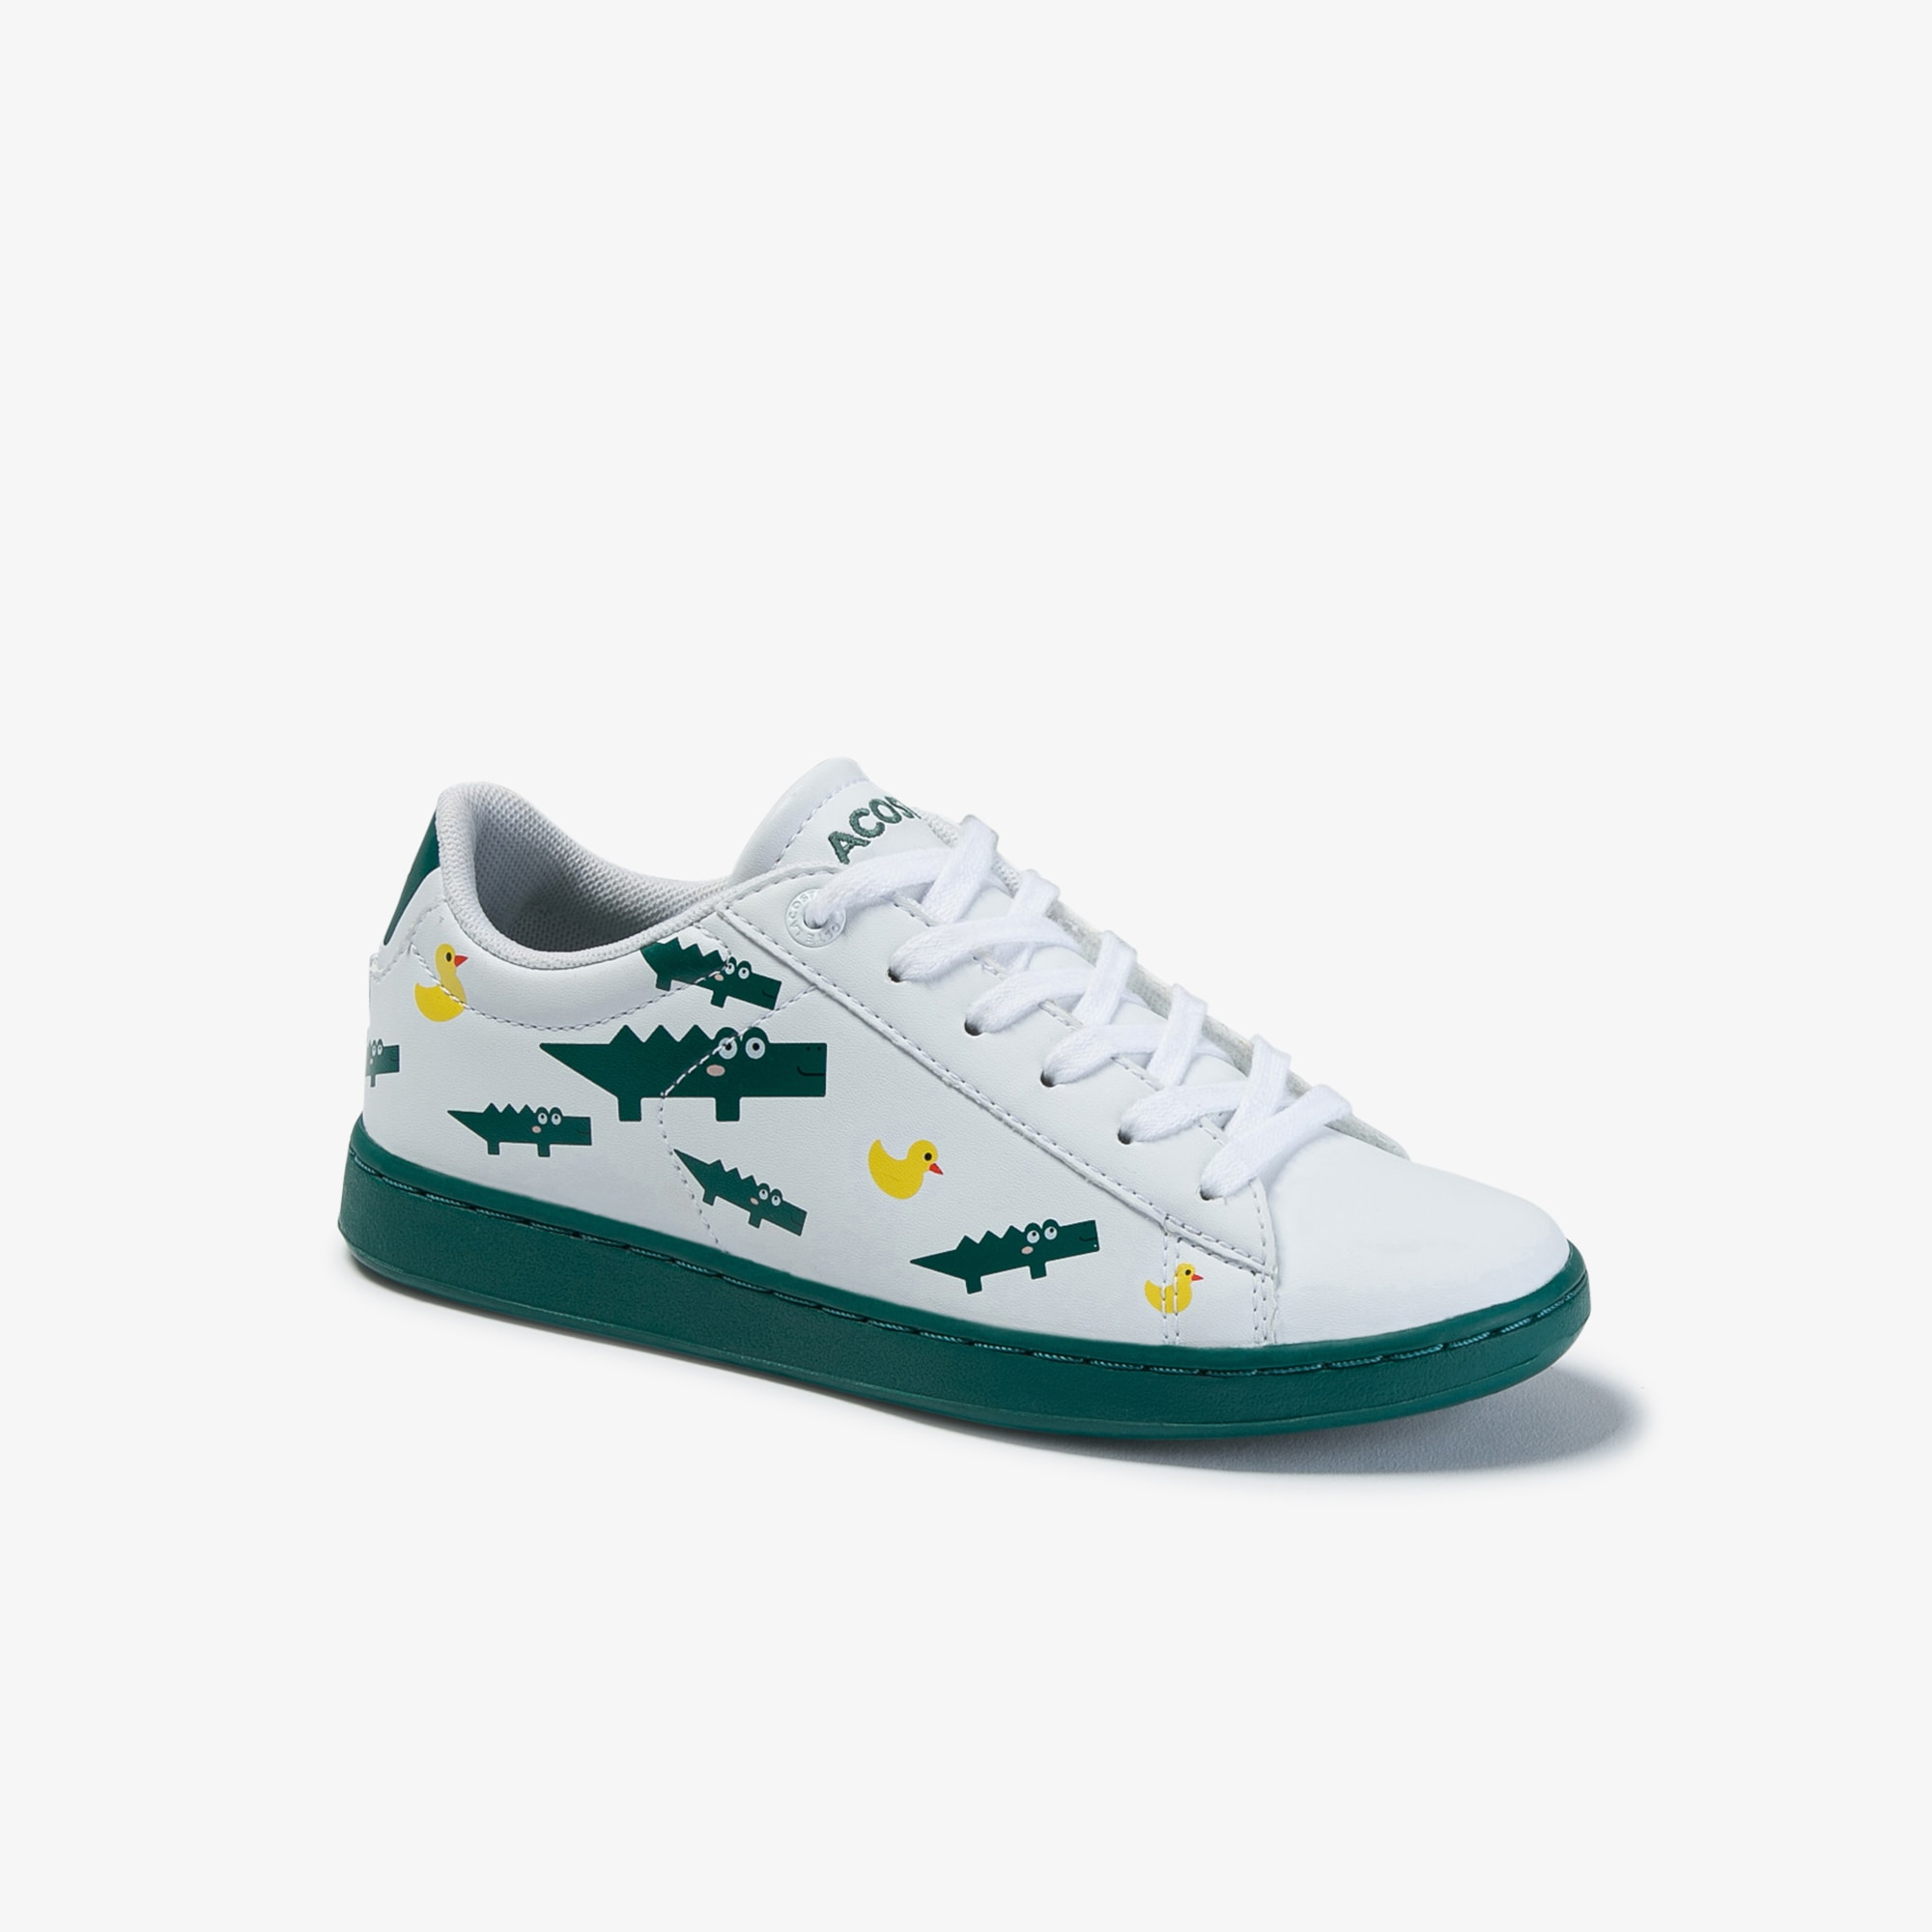 Kinder-Sneakers CARNABY EVO PRINT aus Synthetik